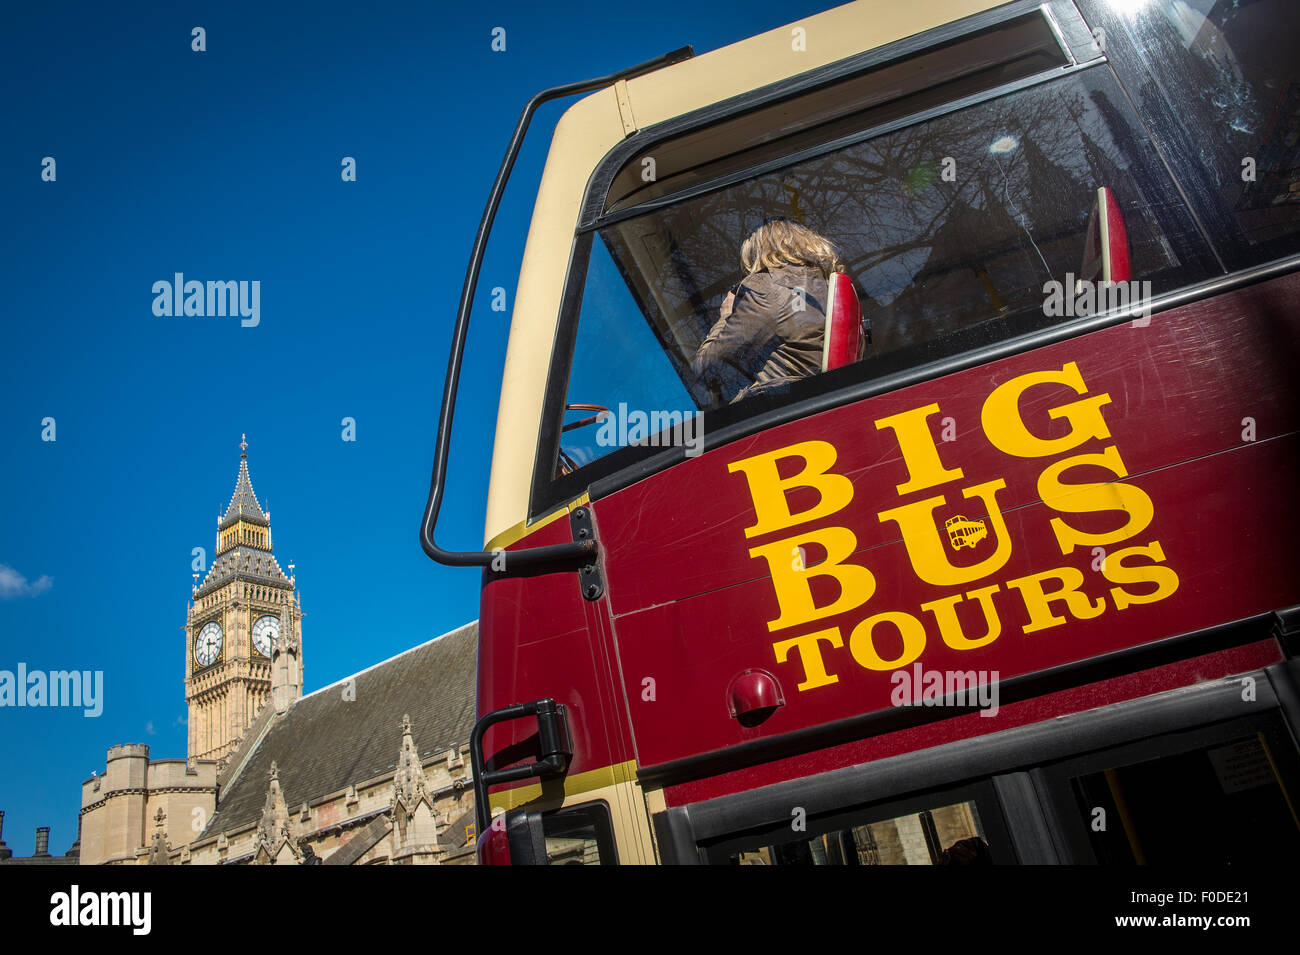 Tourists on the top deck of a sightseeing bus in London. - Stock Image